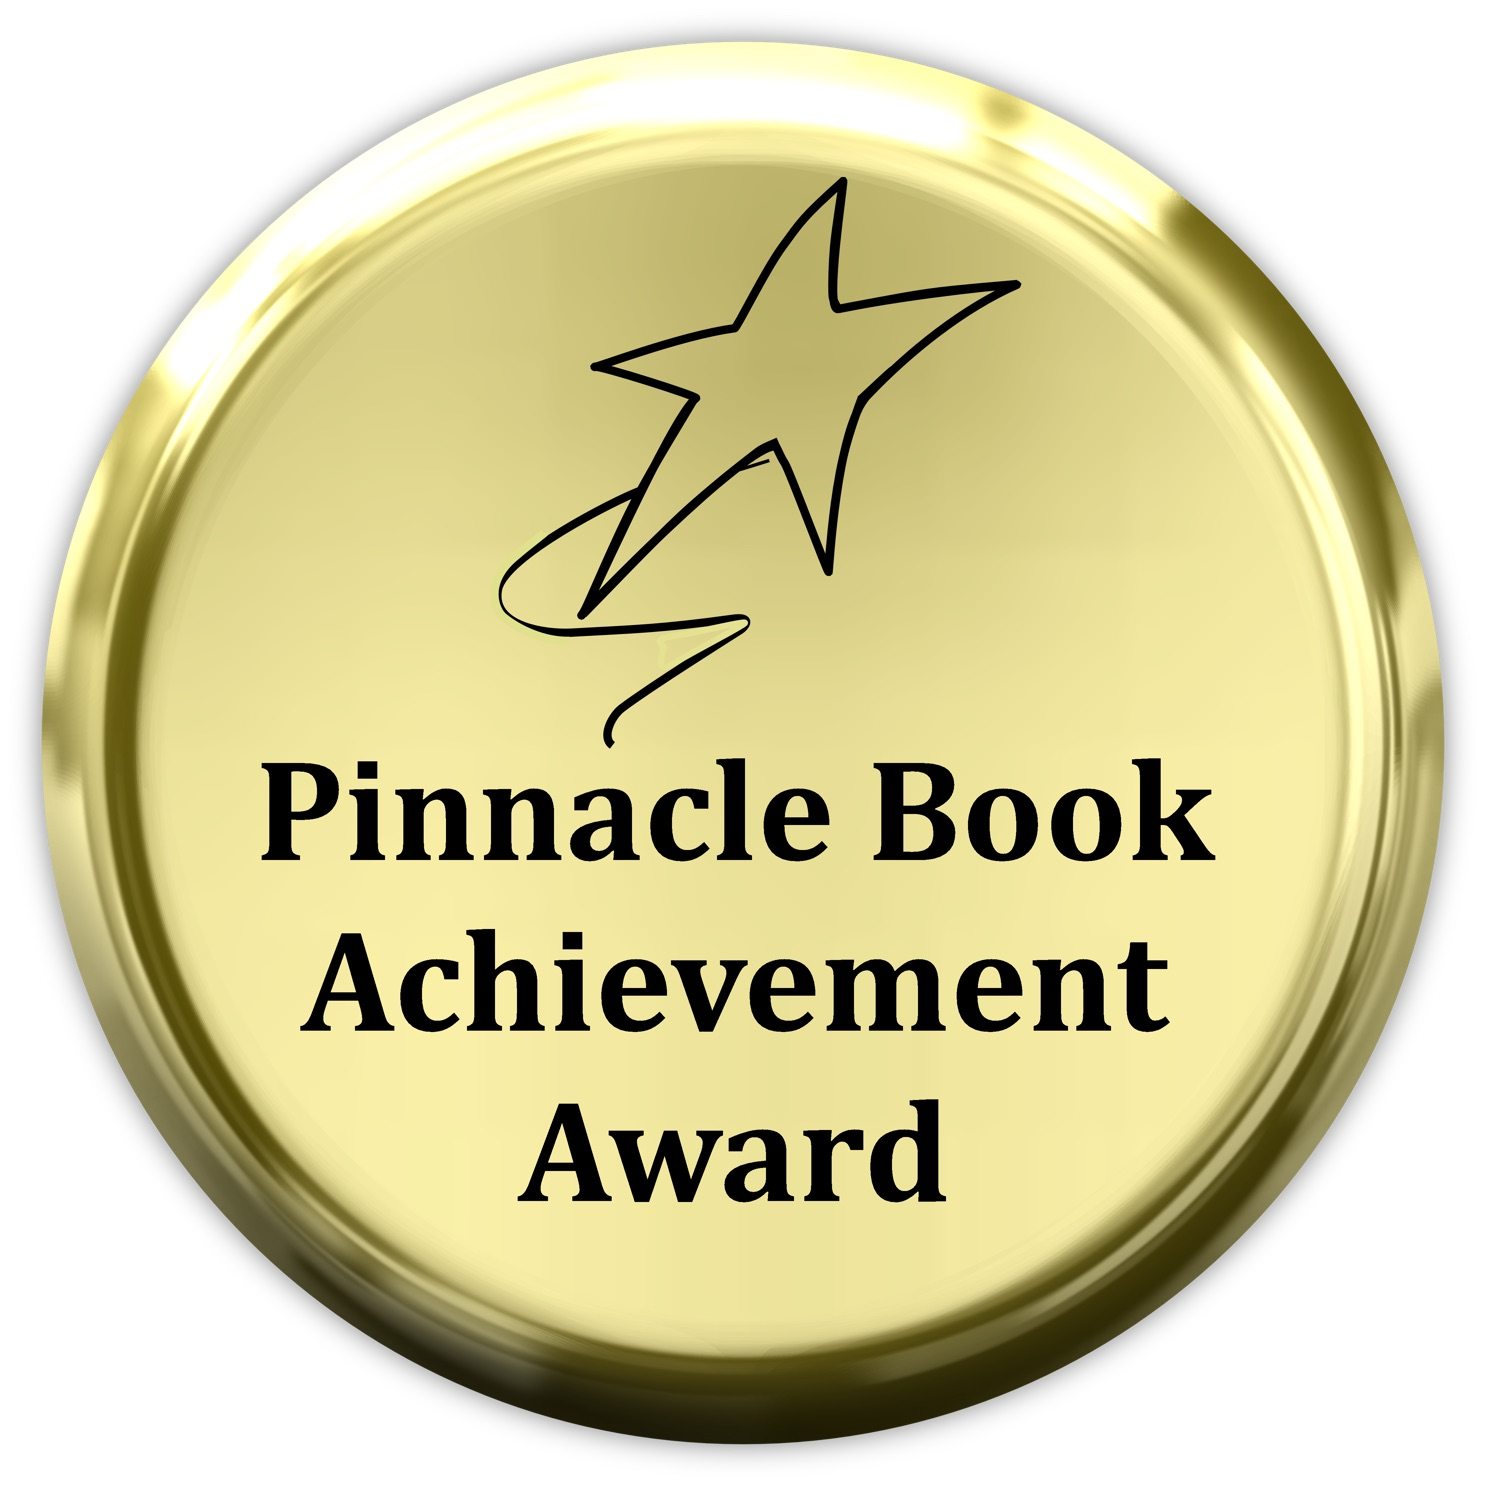 PINNACLE BOOK ACHIEVEMENT AWARD WINNER!